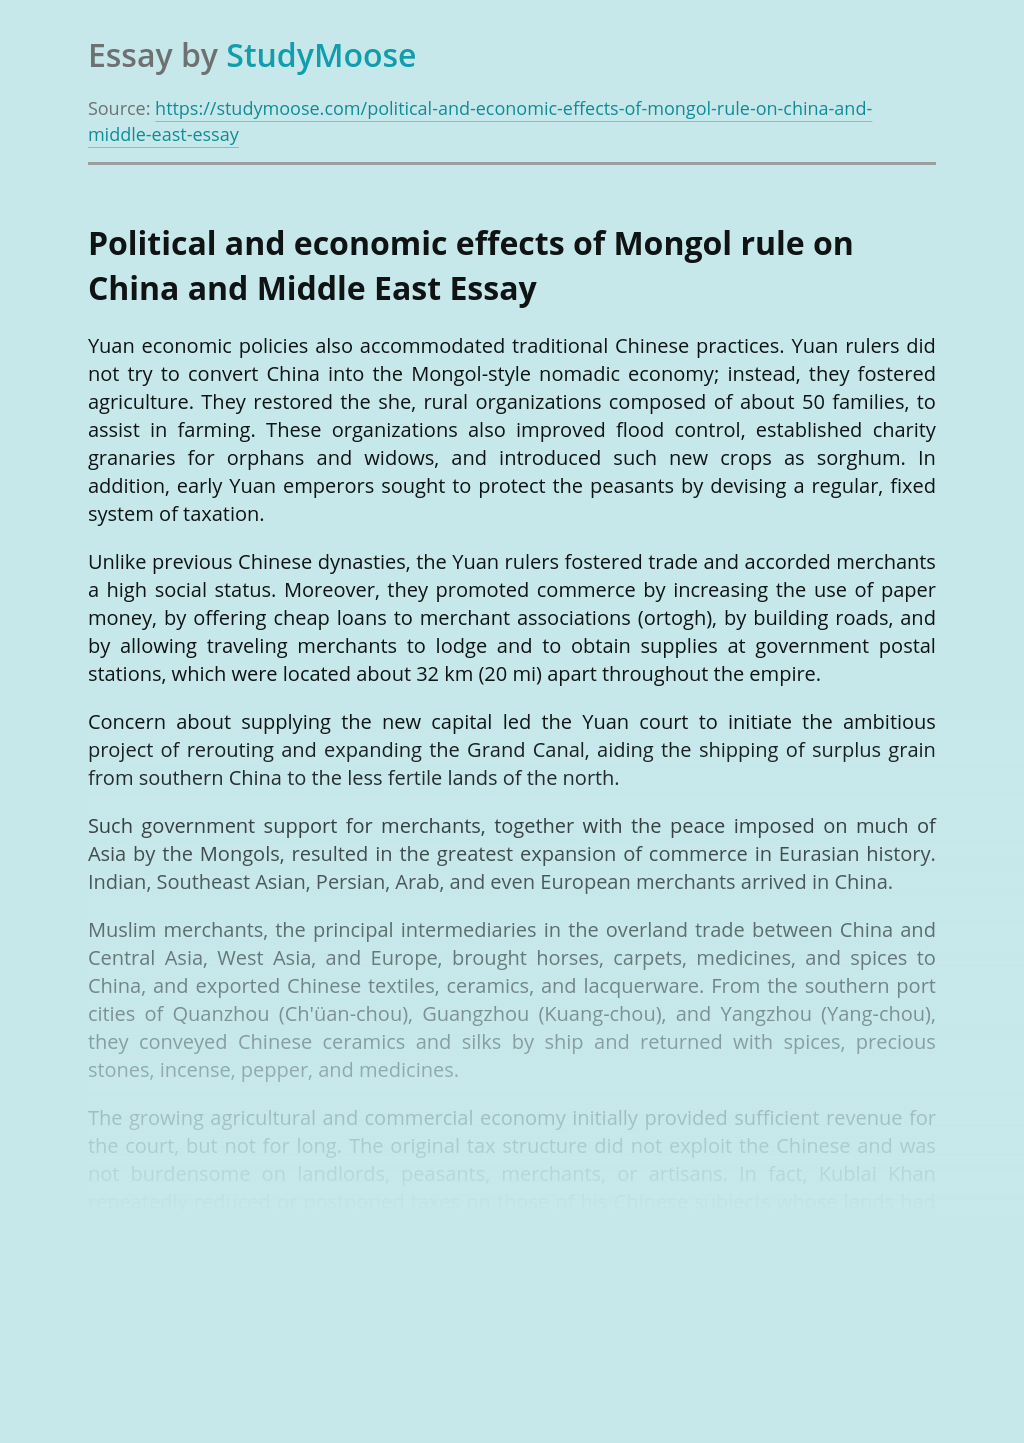 Political and economic effects of Mongol rule on China and Middle East